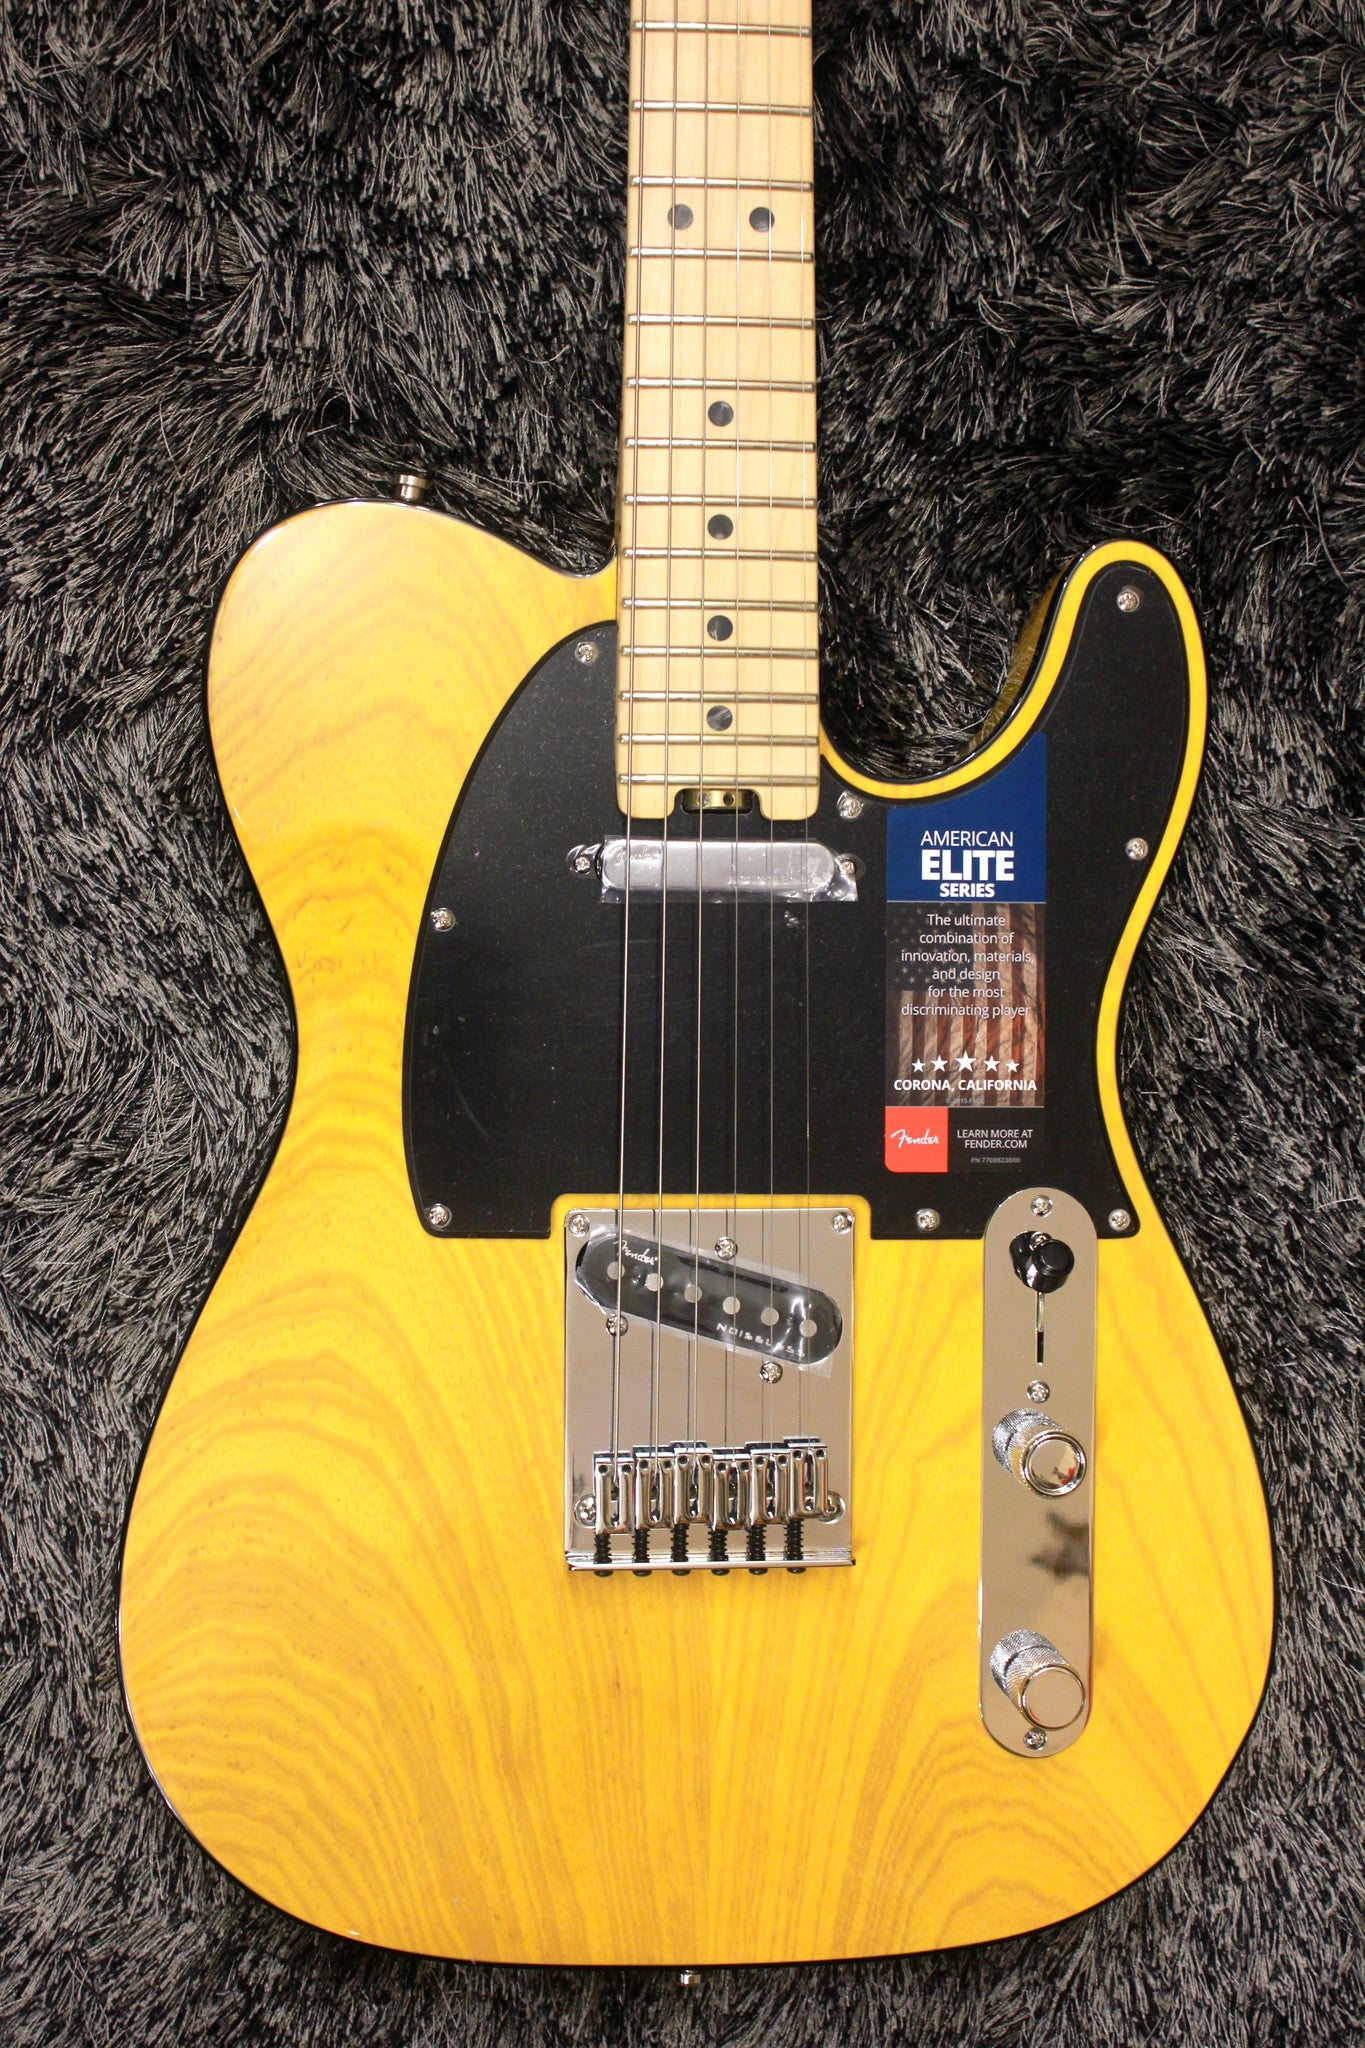 Fender American Elite Telecaster - Butterscotch Blonde with Maple Fingerboard HIENDGUITAR.COM - HIENDGUITAR.COM